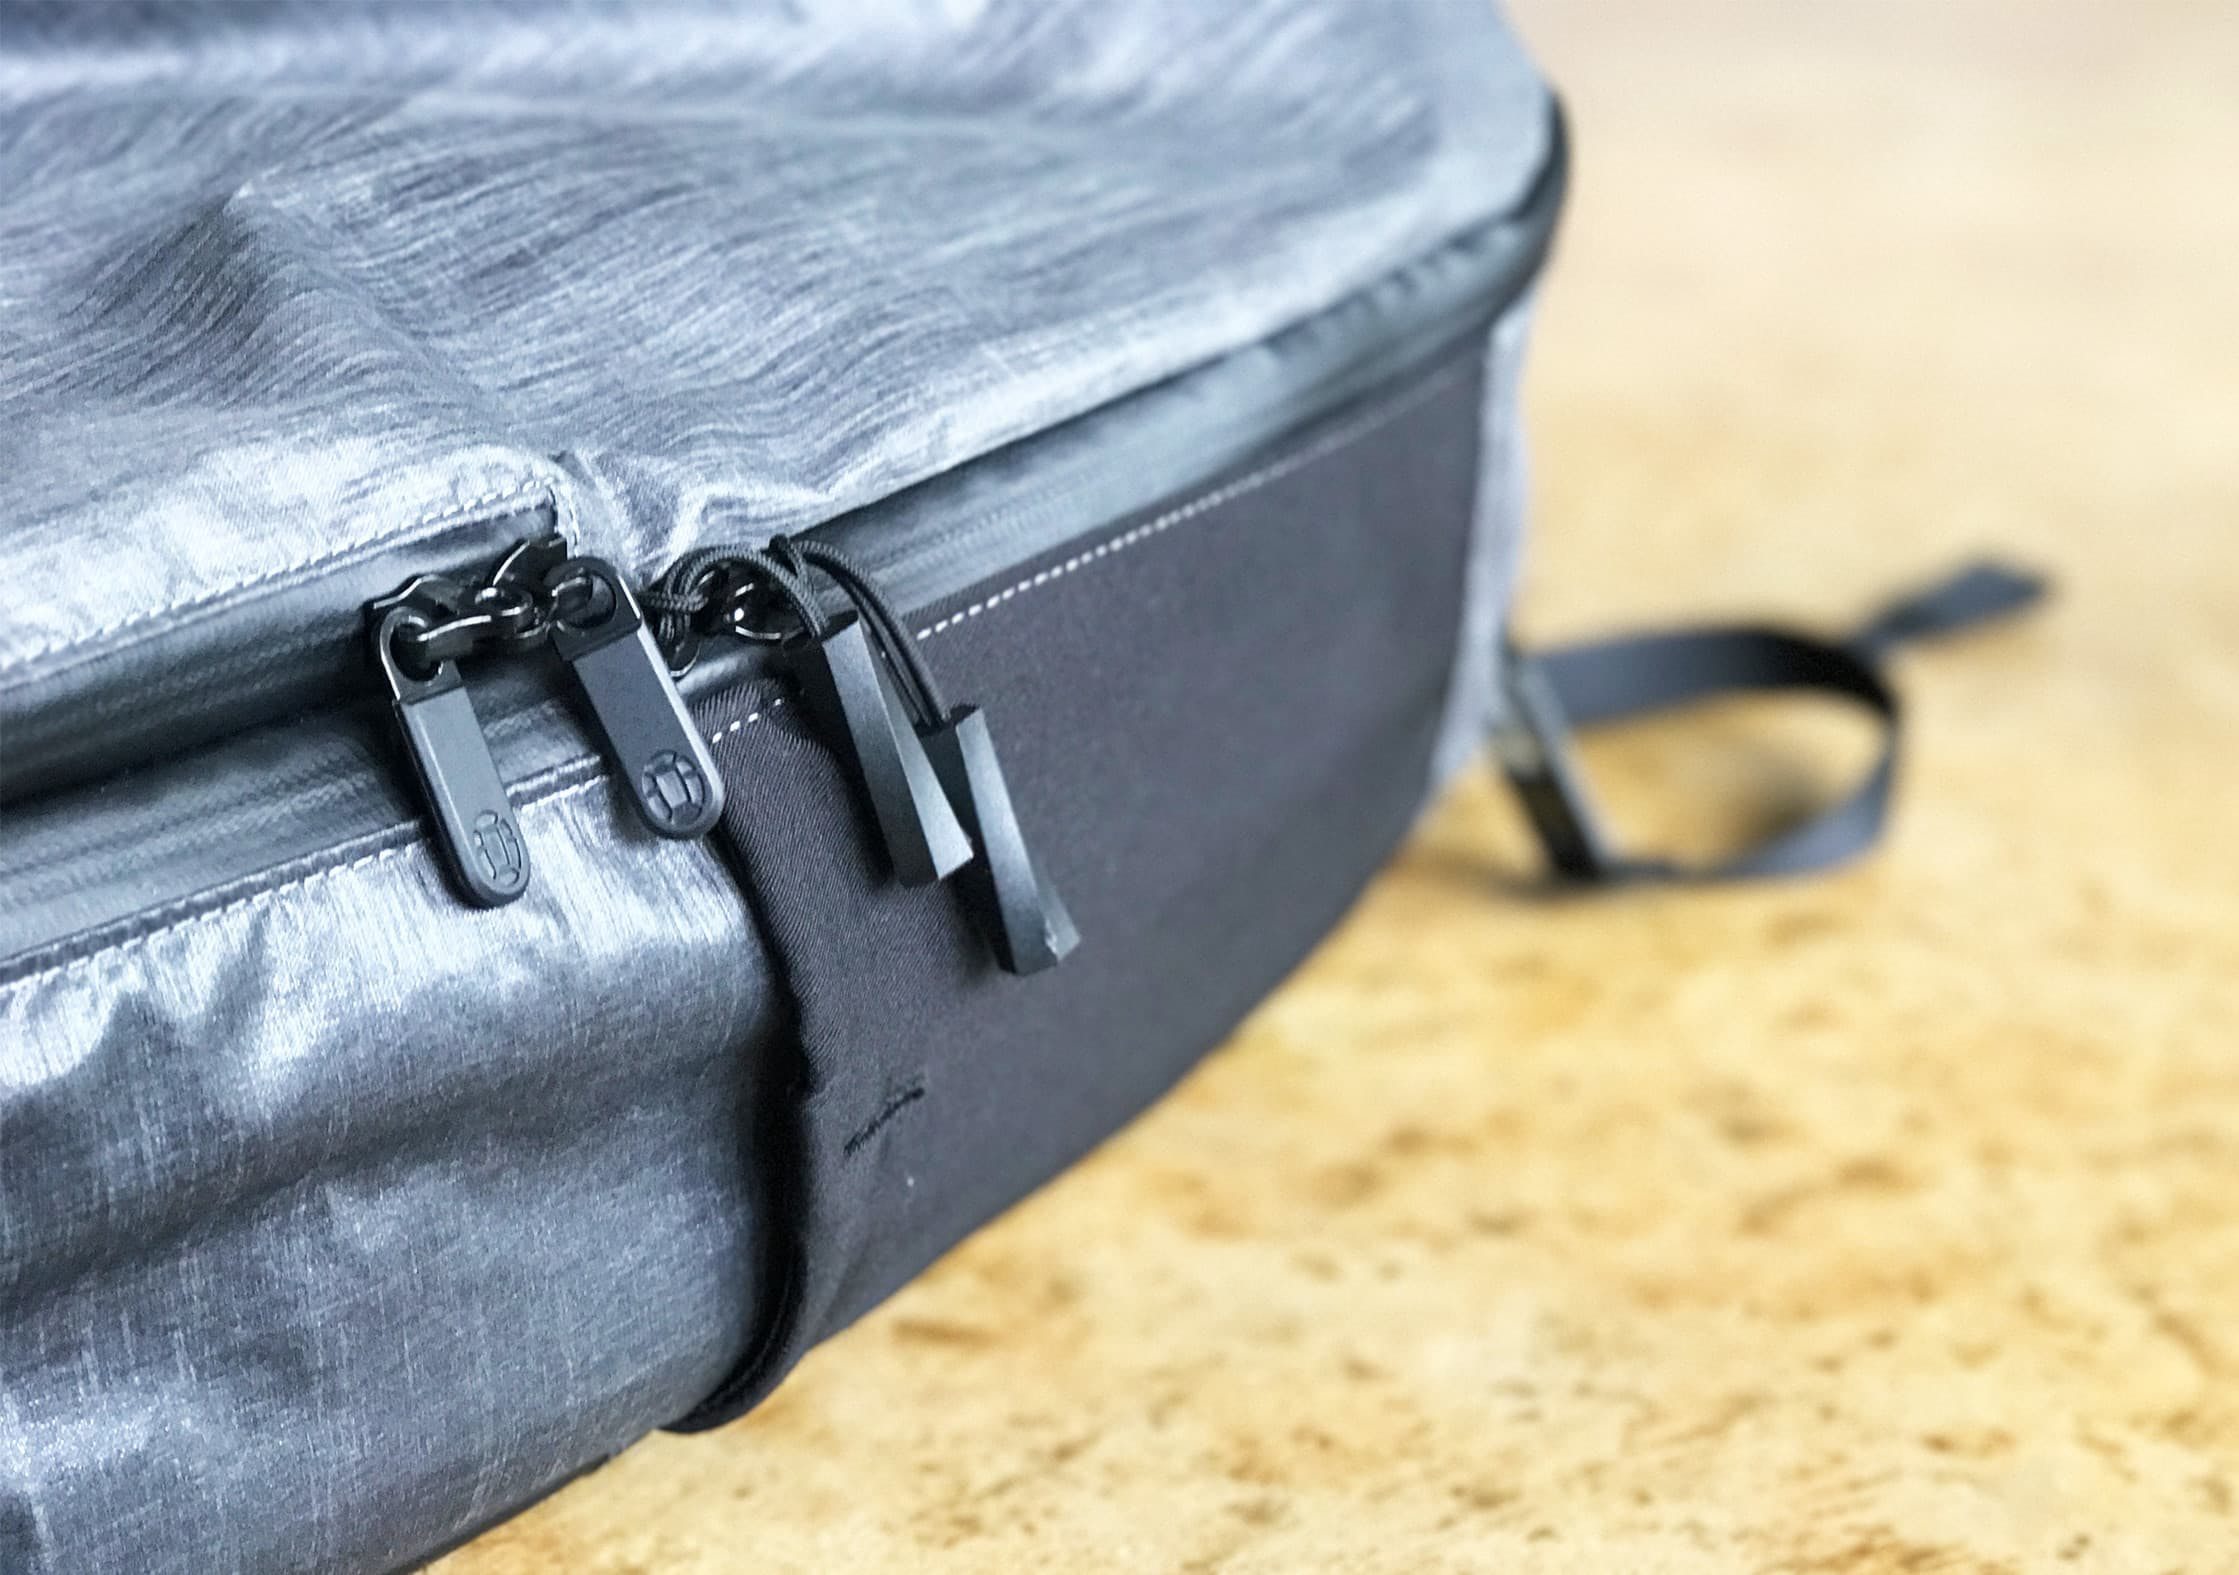 Lockable and water resistant YKK Zippers on the Tortuga Homebase Backpack